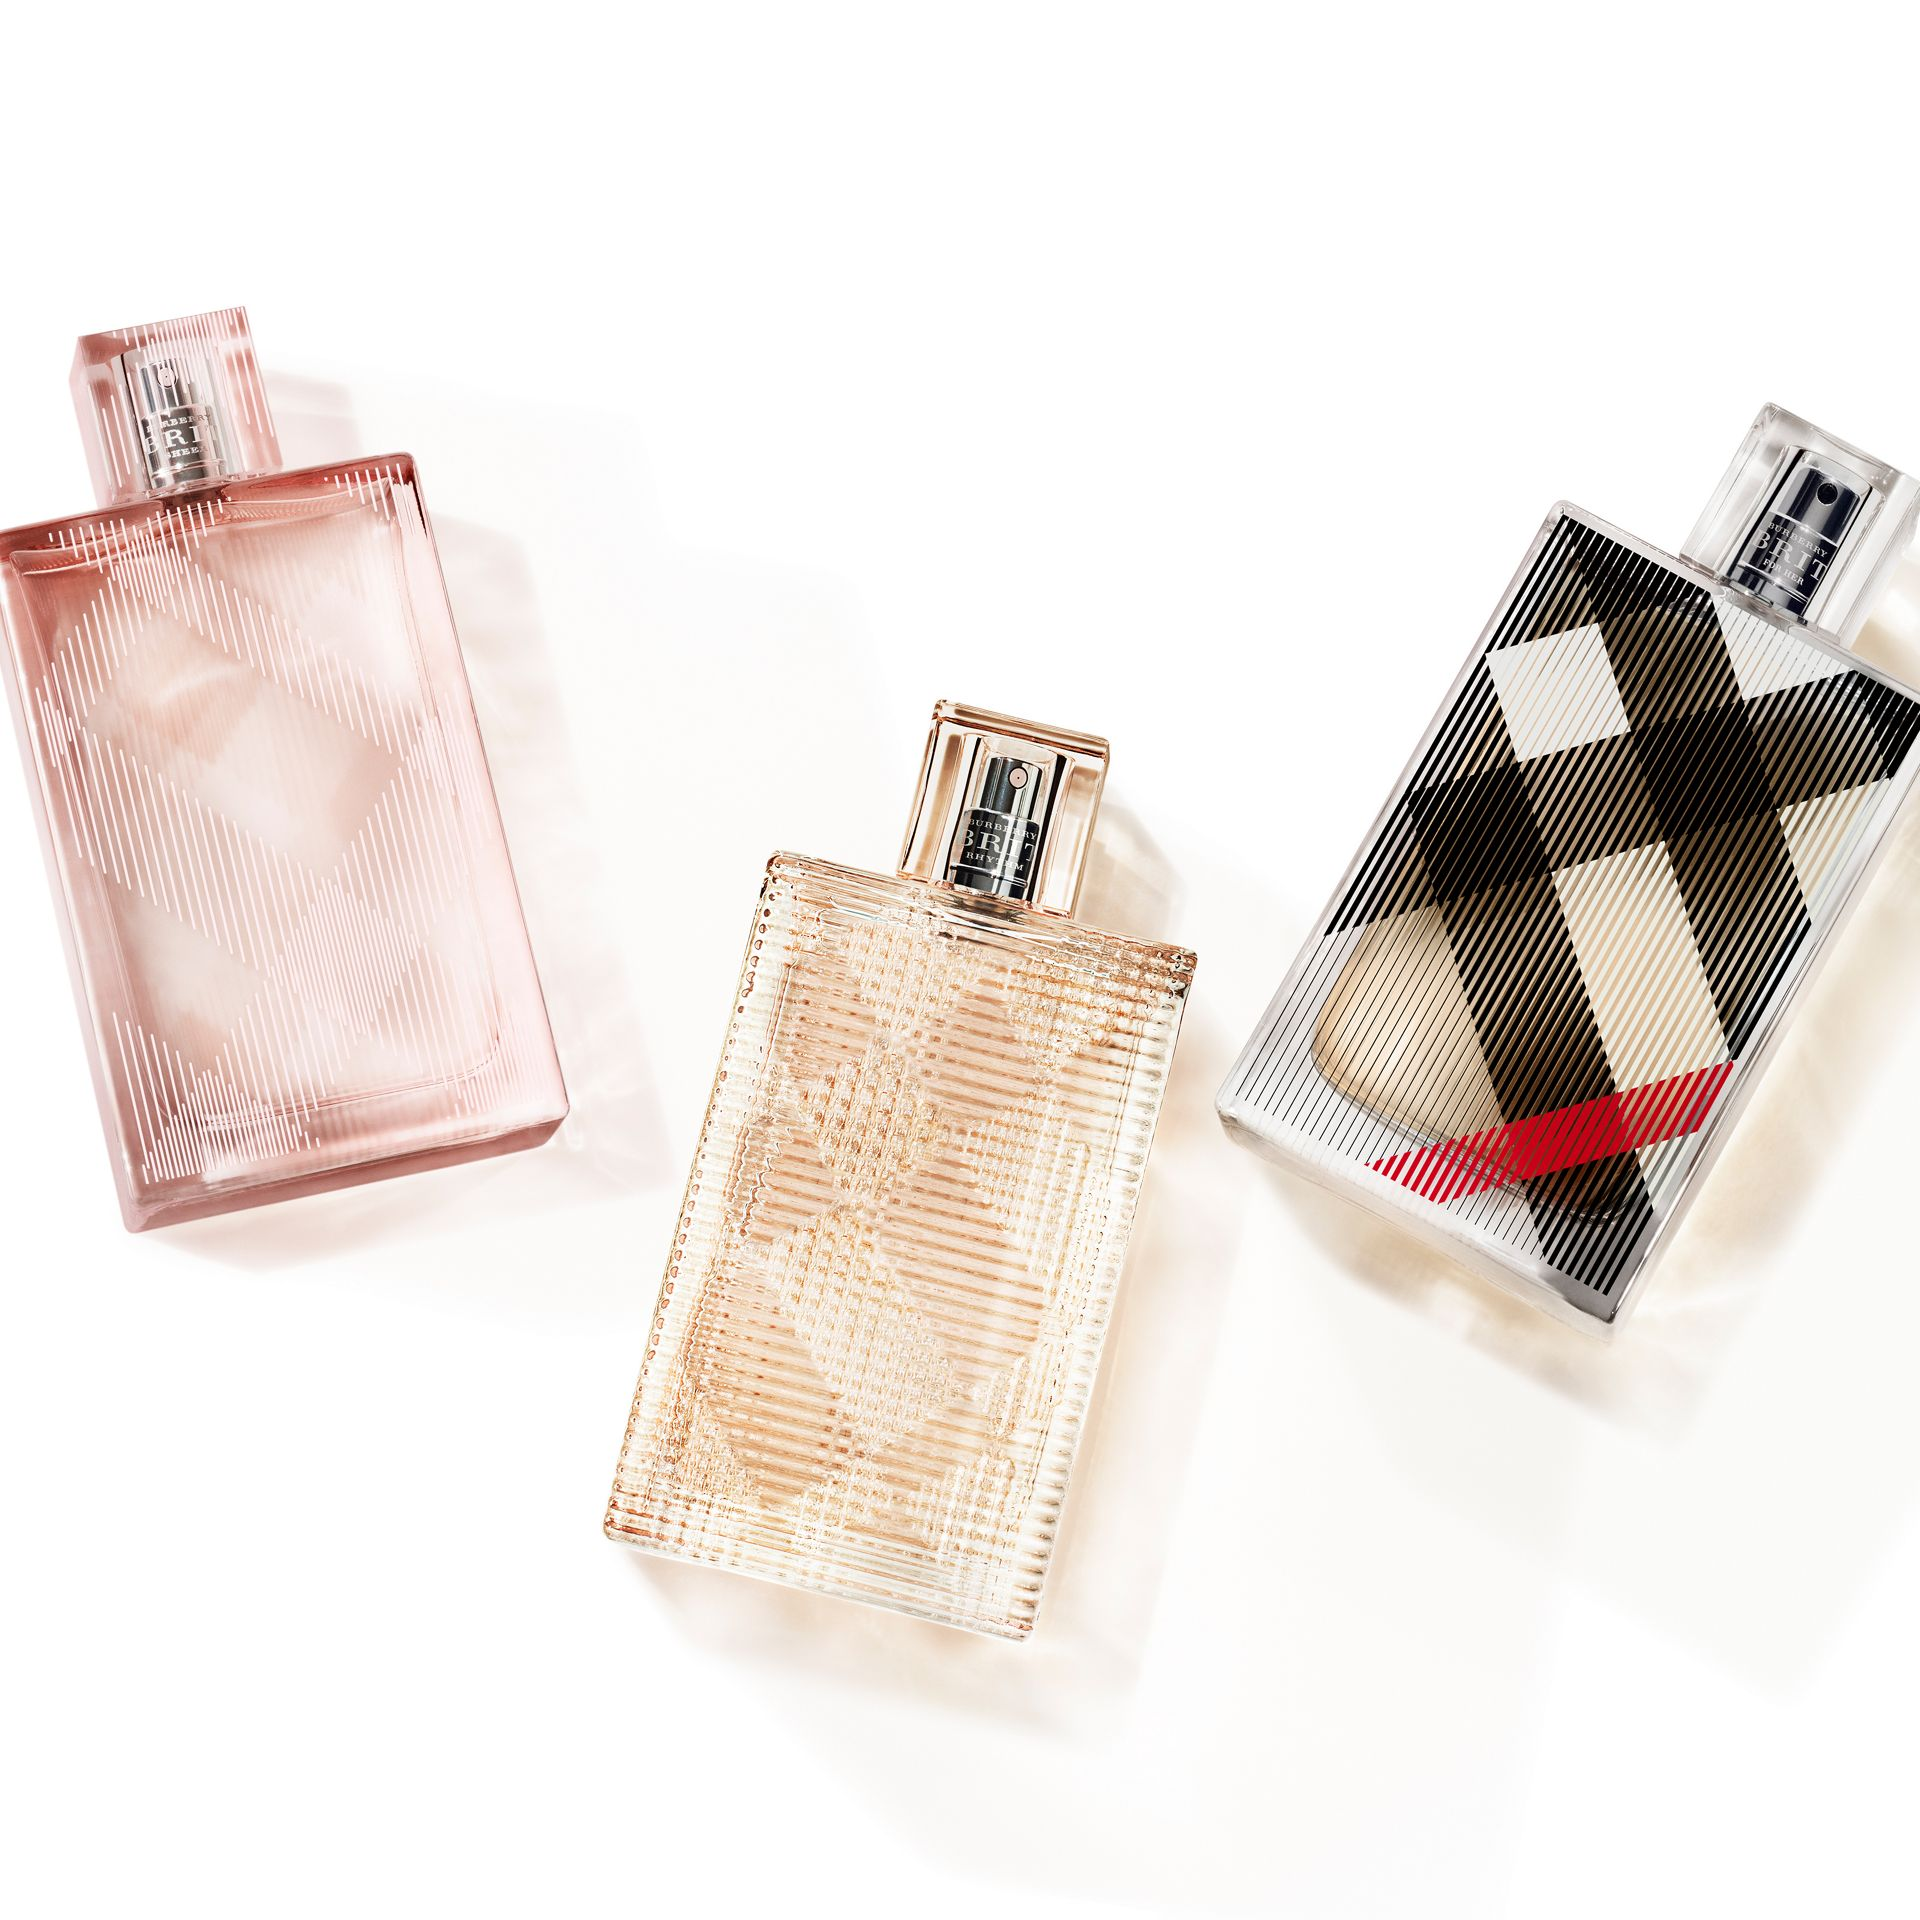 Eau de Toilette Burberry Brit Sheer 100 ml - Femme | Burberry - photo de la galerie 3